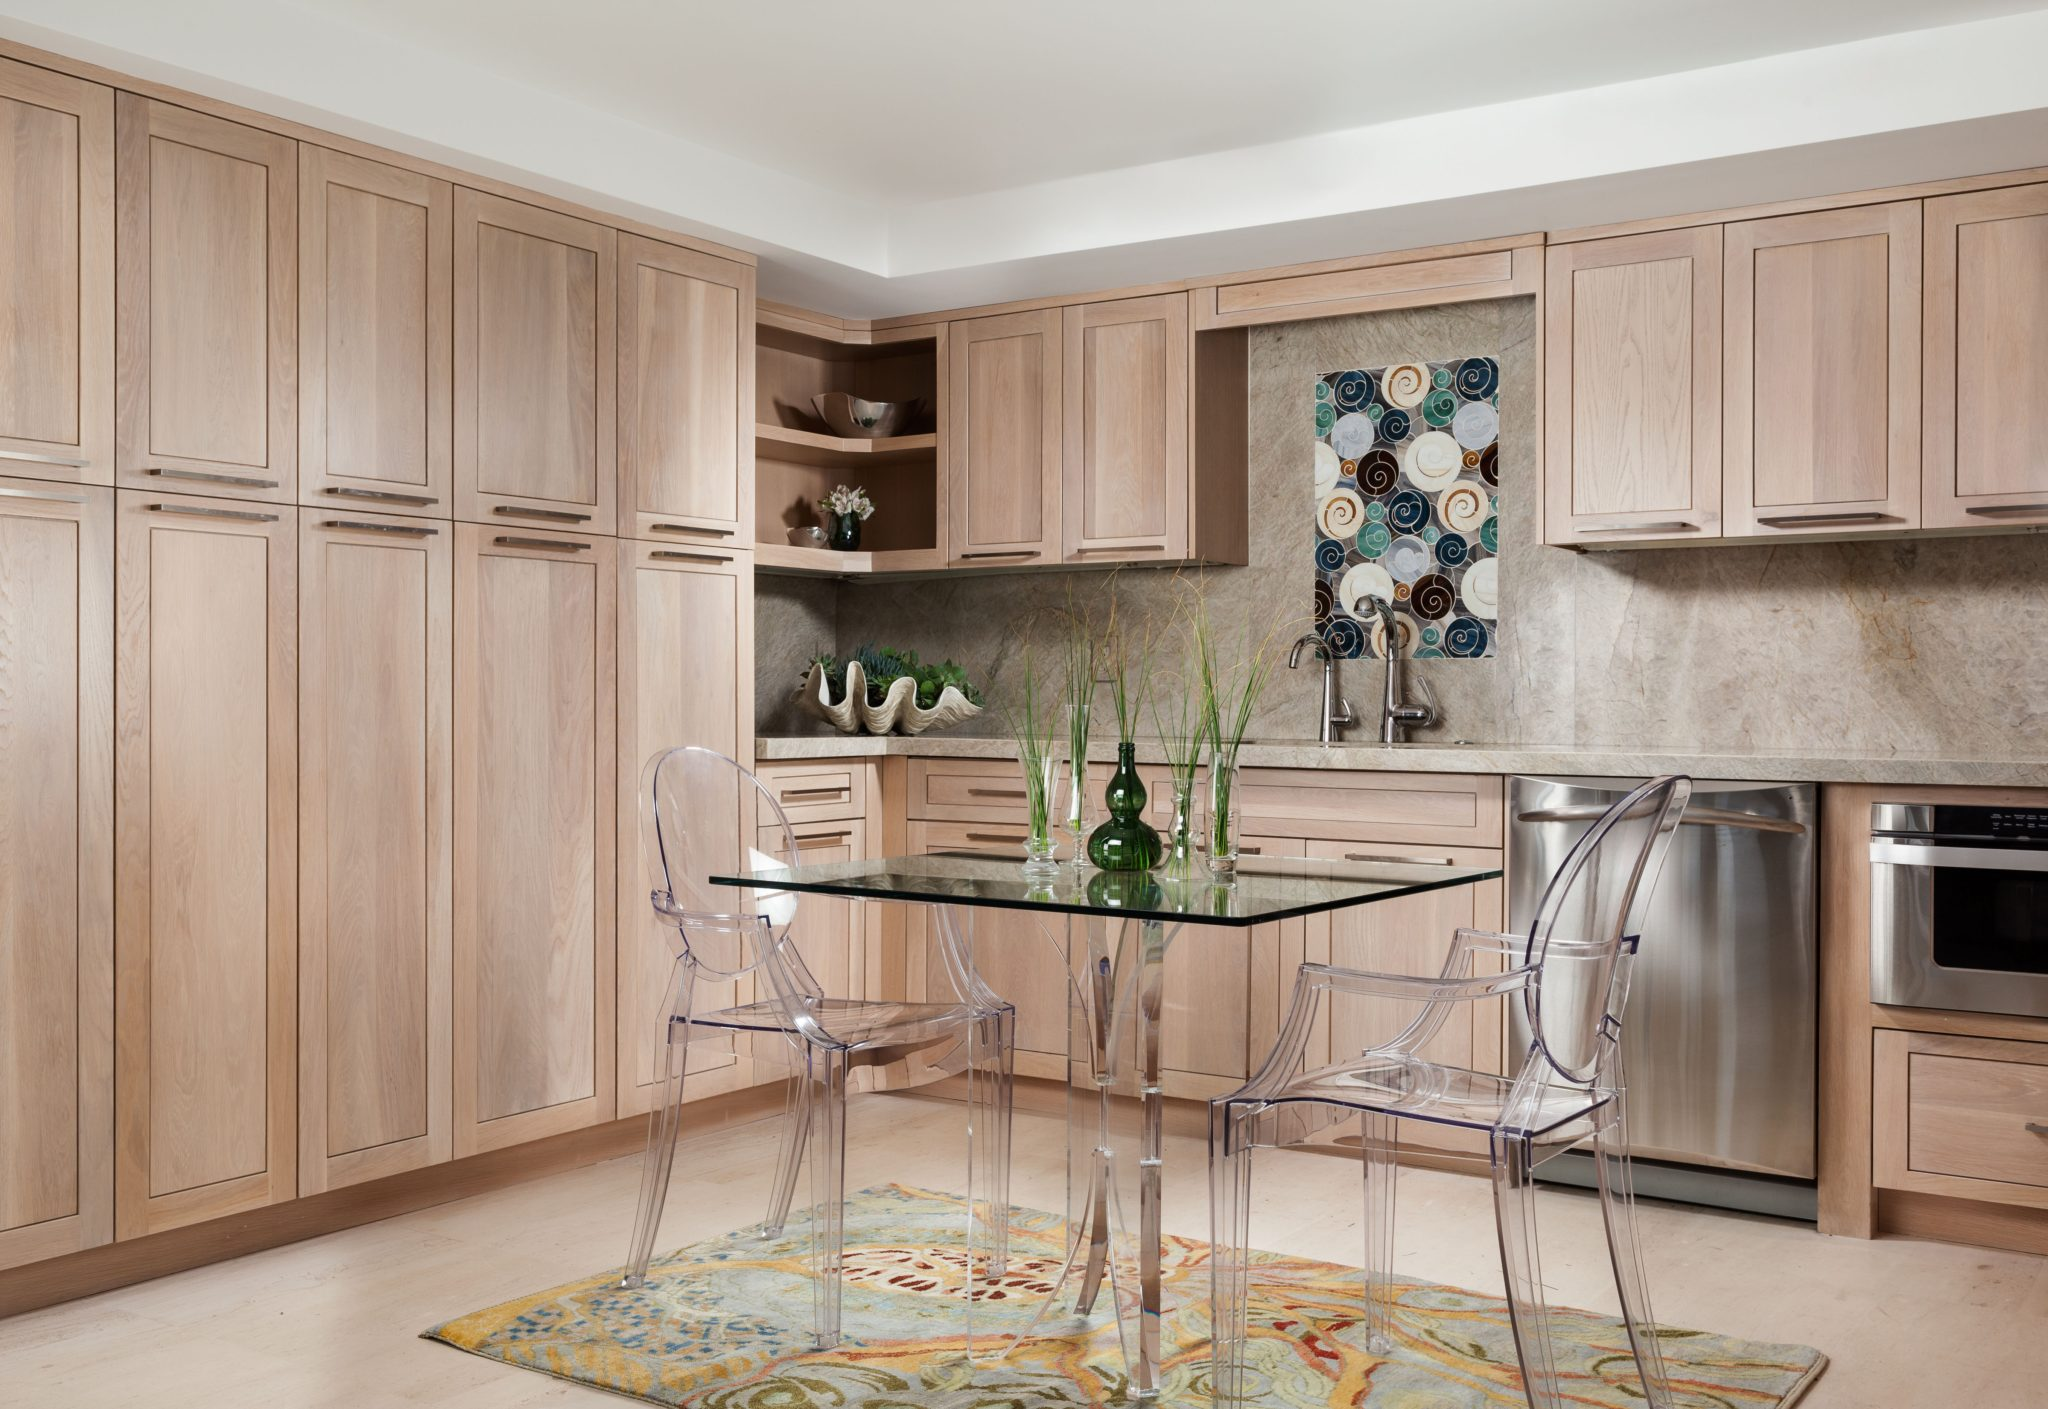 The kitchen features light wood tone cabinetry complementing a natural stone floor, a marble backsplash and light marble countertops. By Gil Walsh Interiors